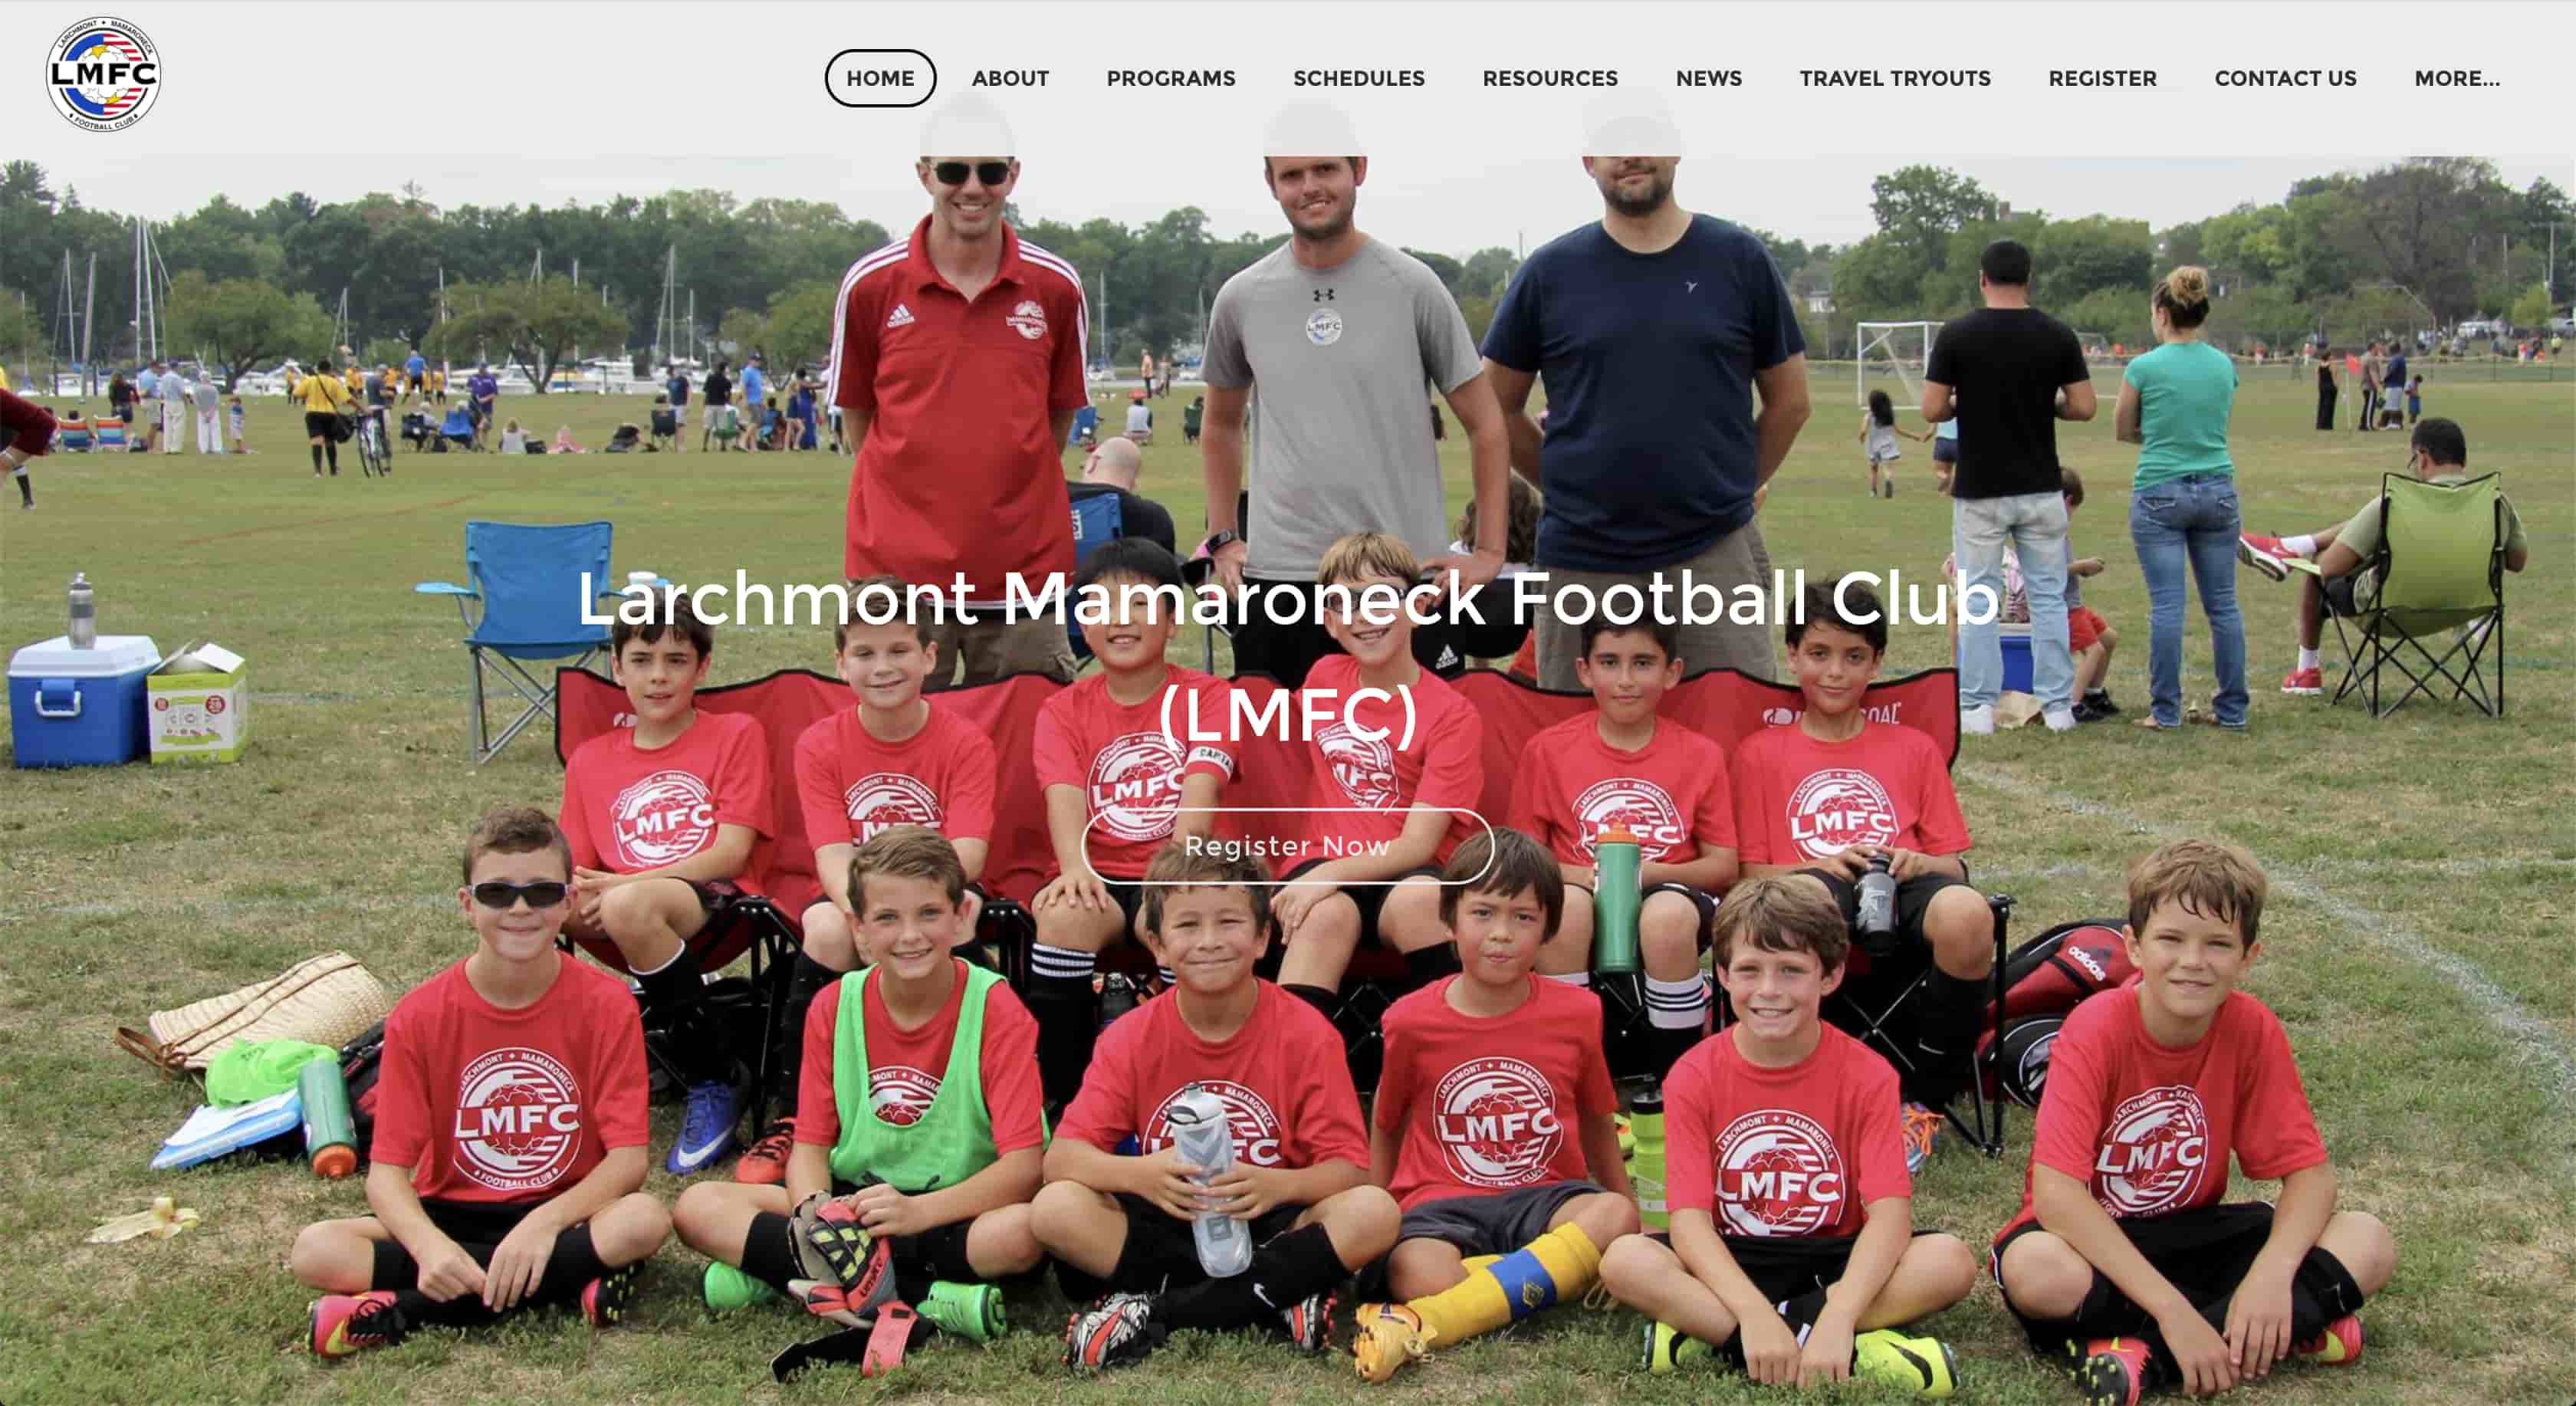 LMFC Homepage